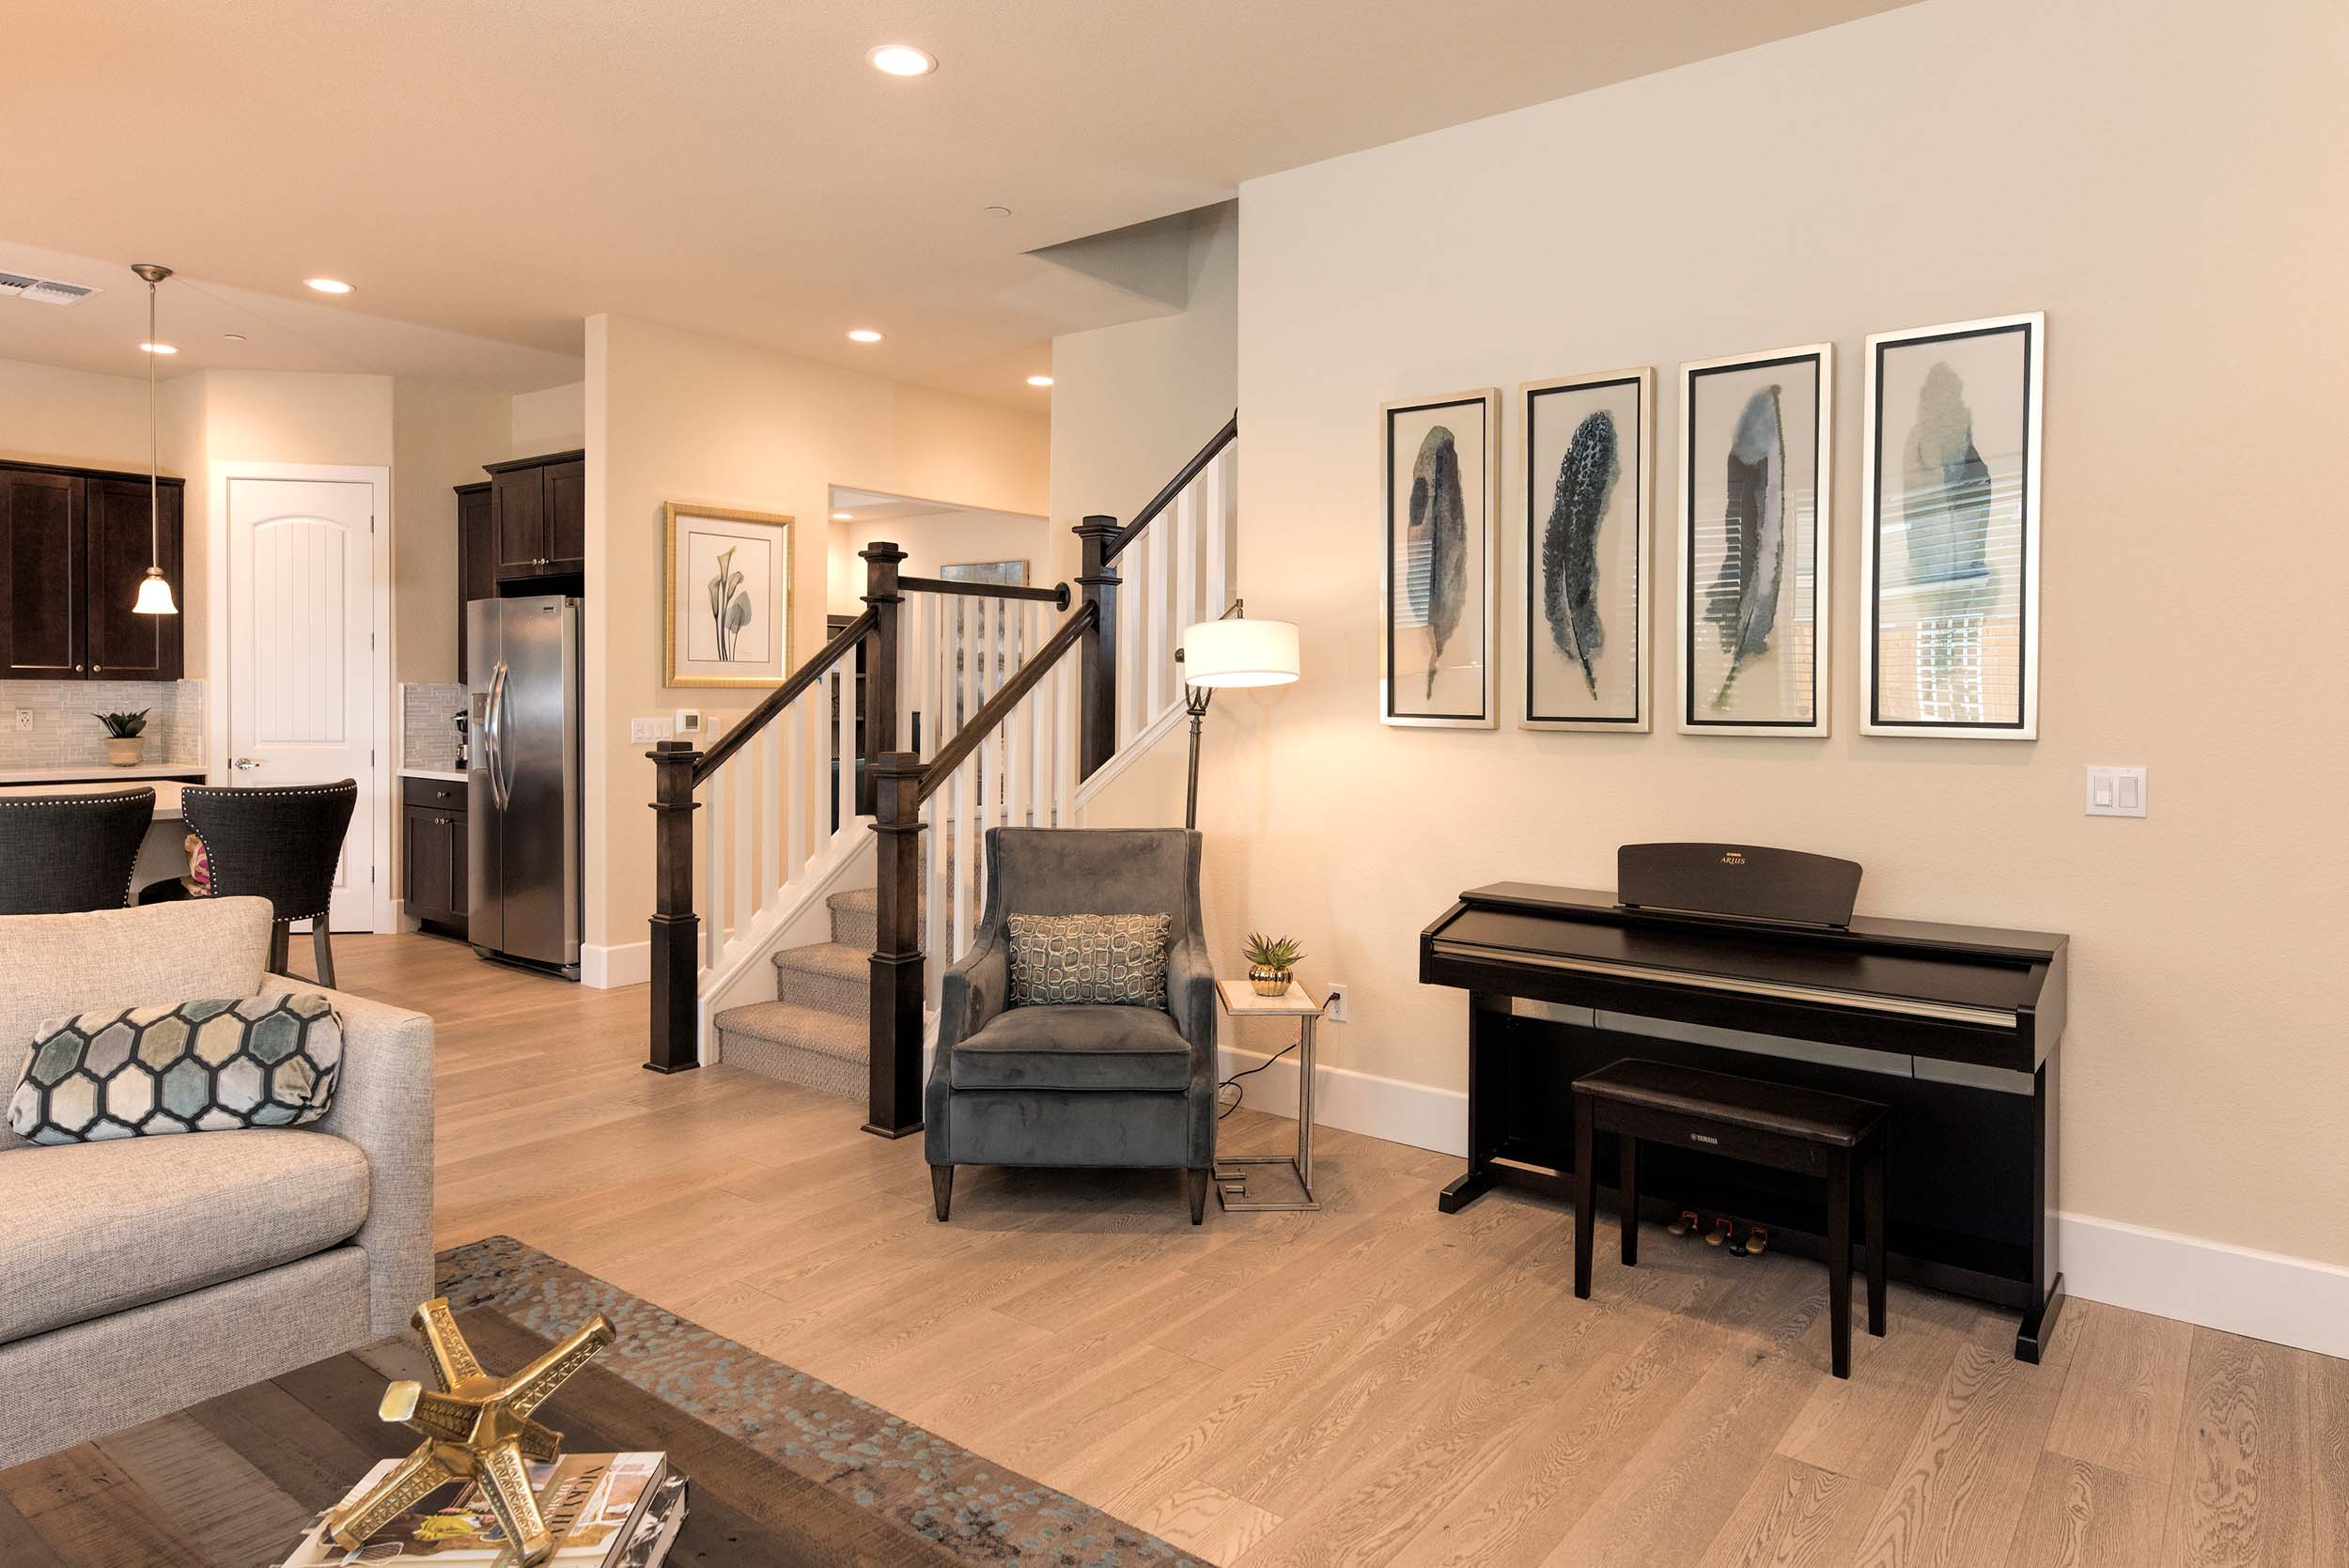 Modern living room with hardwood floor, grand piano, staircase and frames on the wall